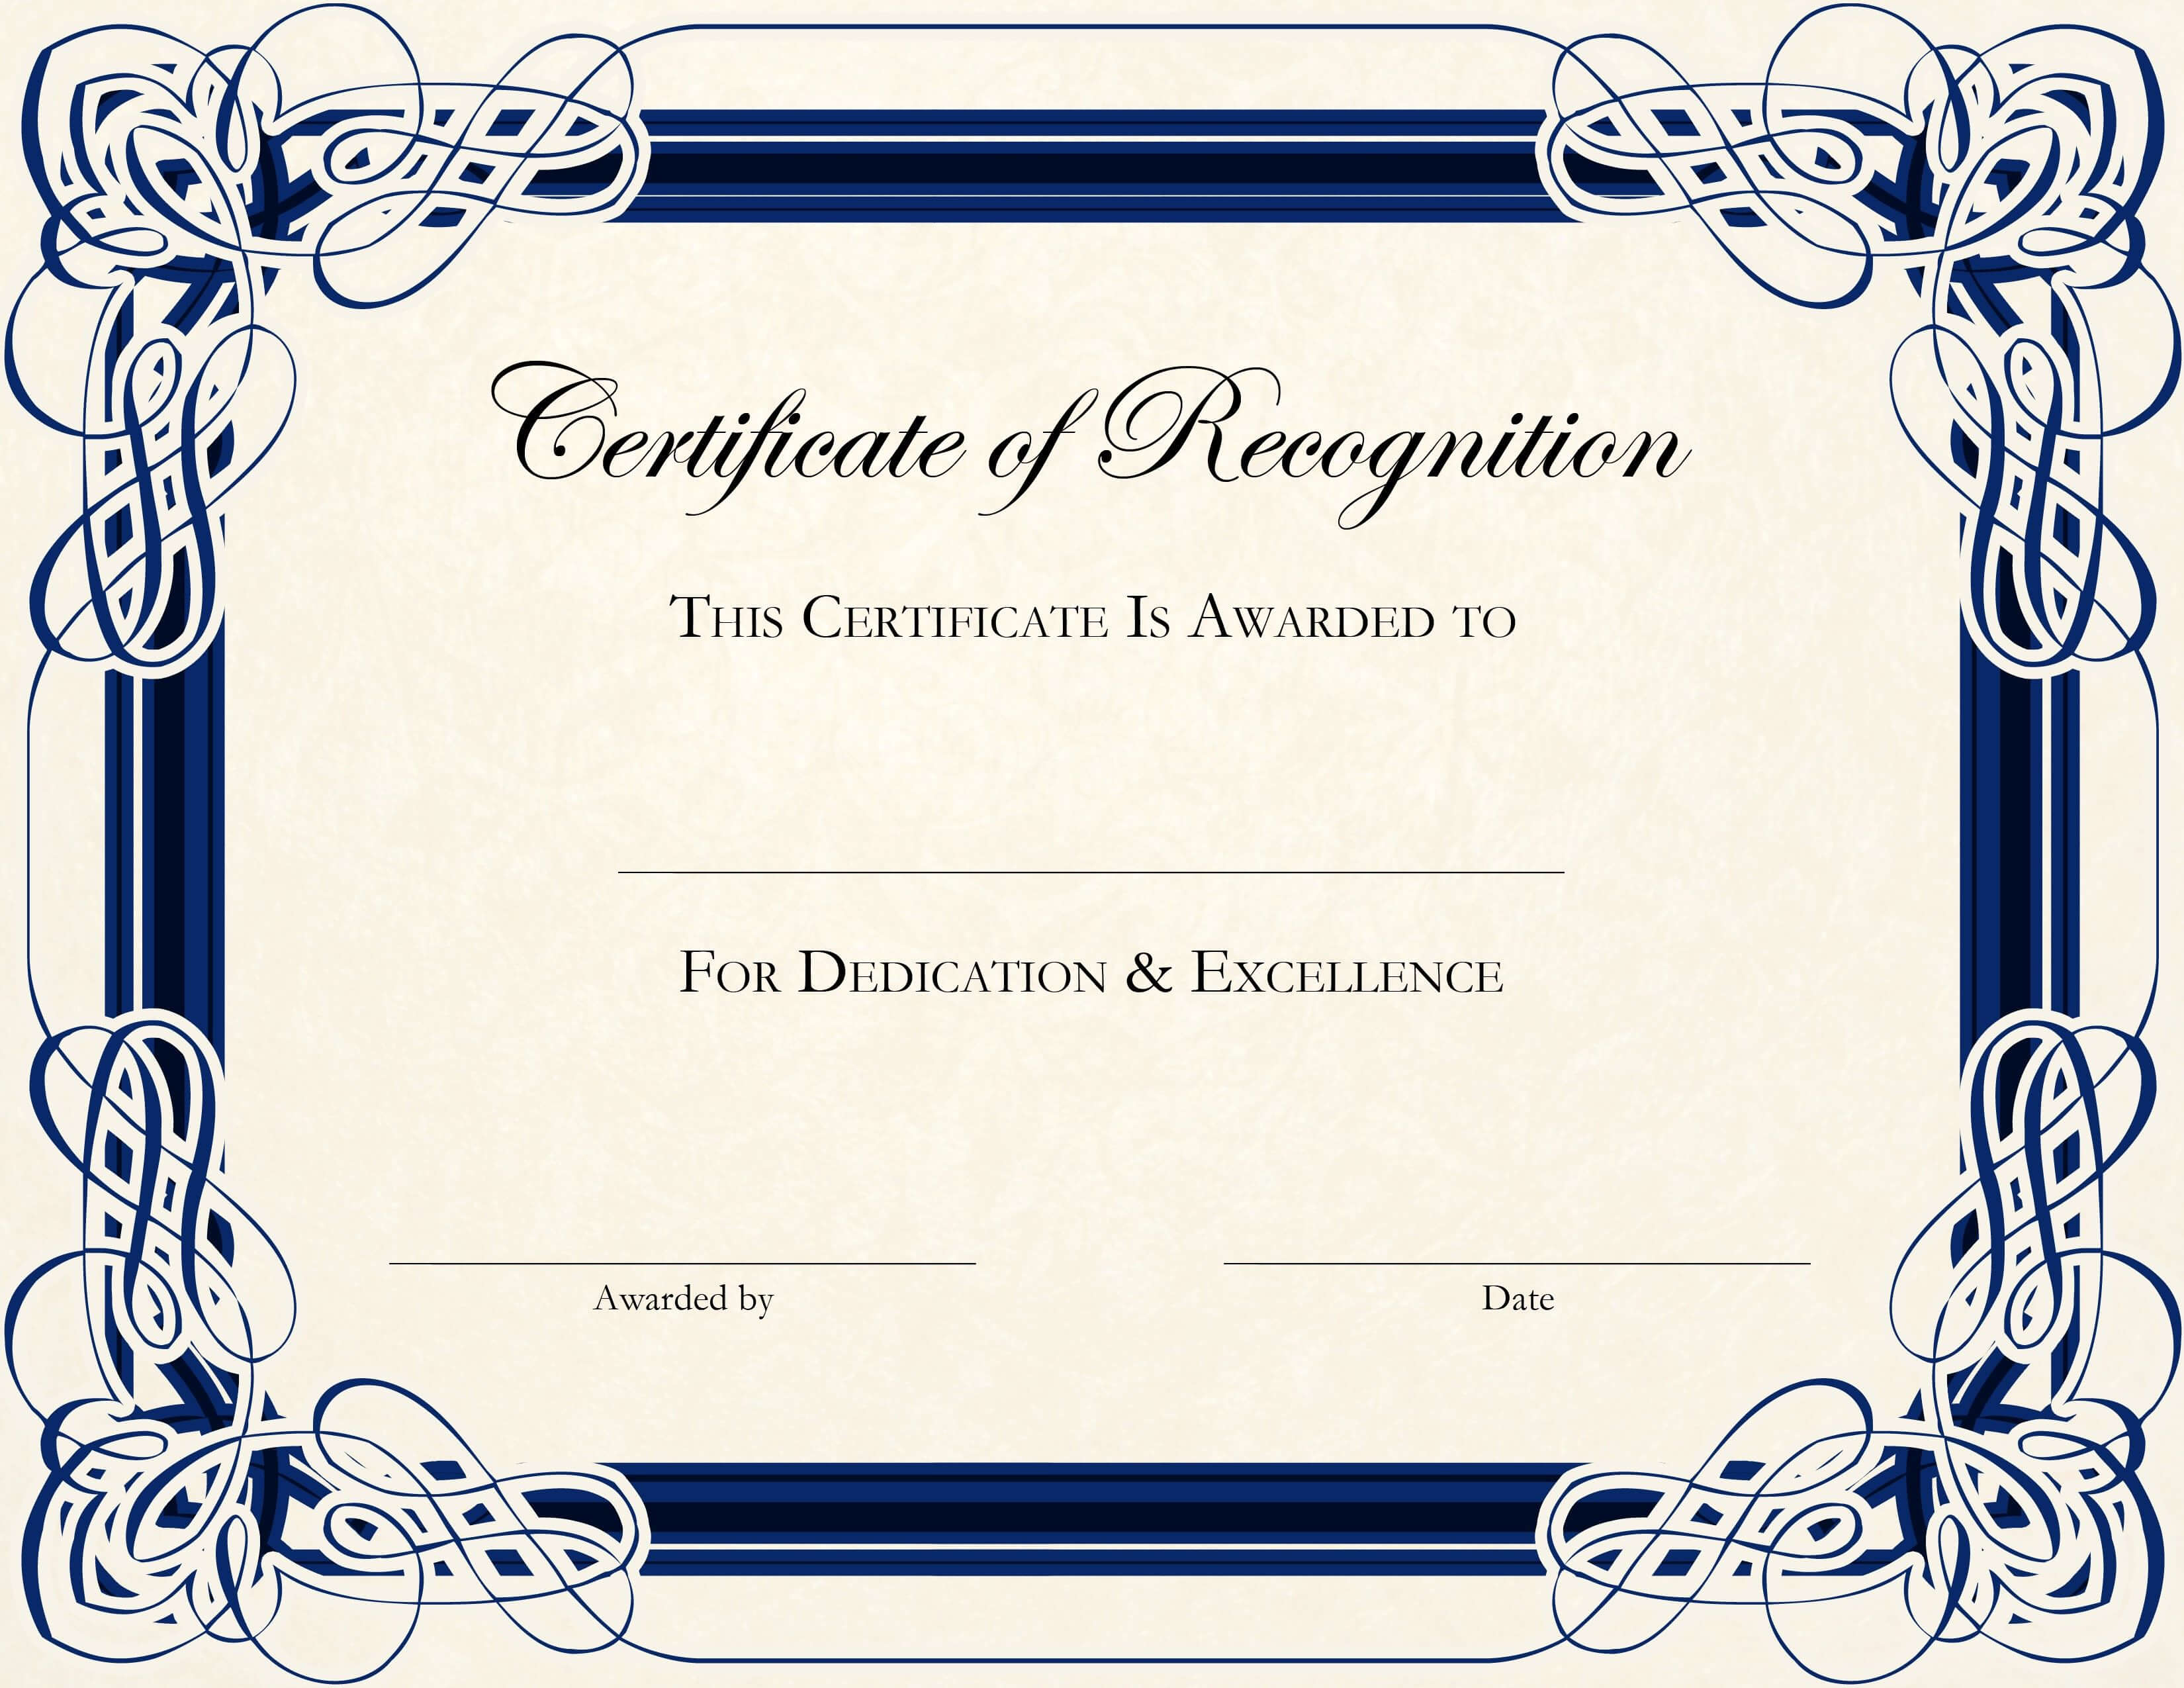 Free Printable Certificate Templates For Teachers Pertaining To Generic Certificate Template